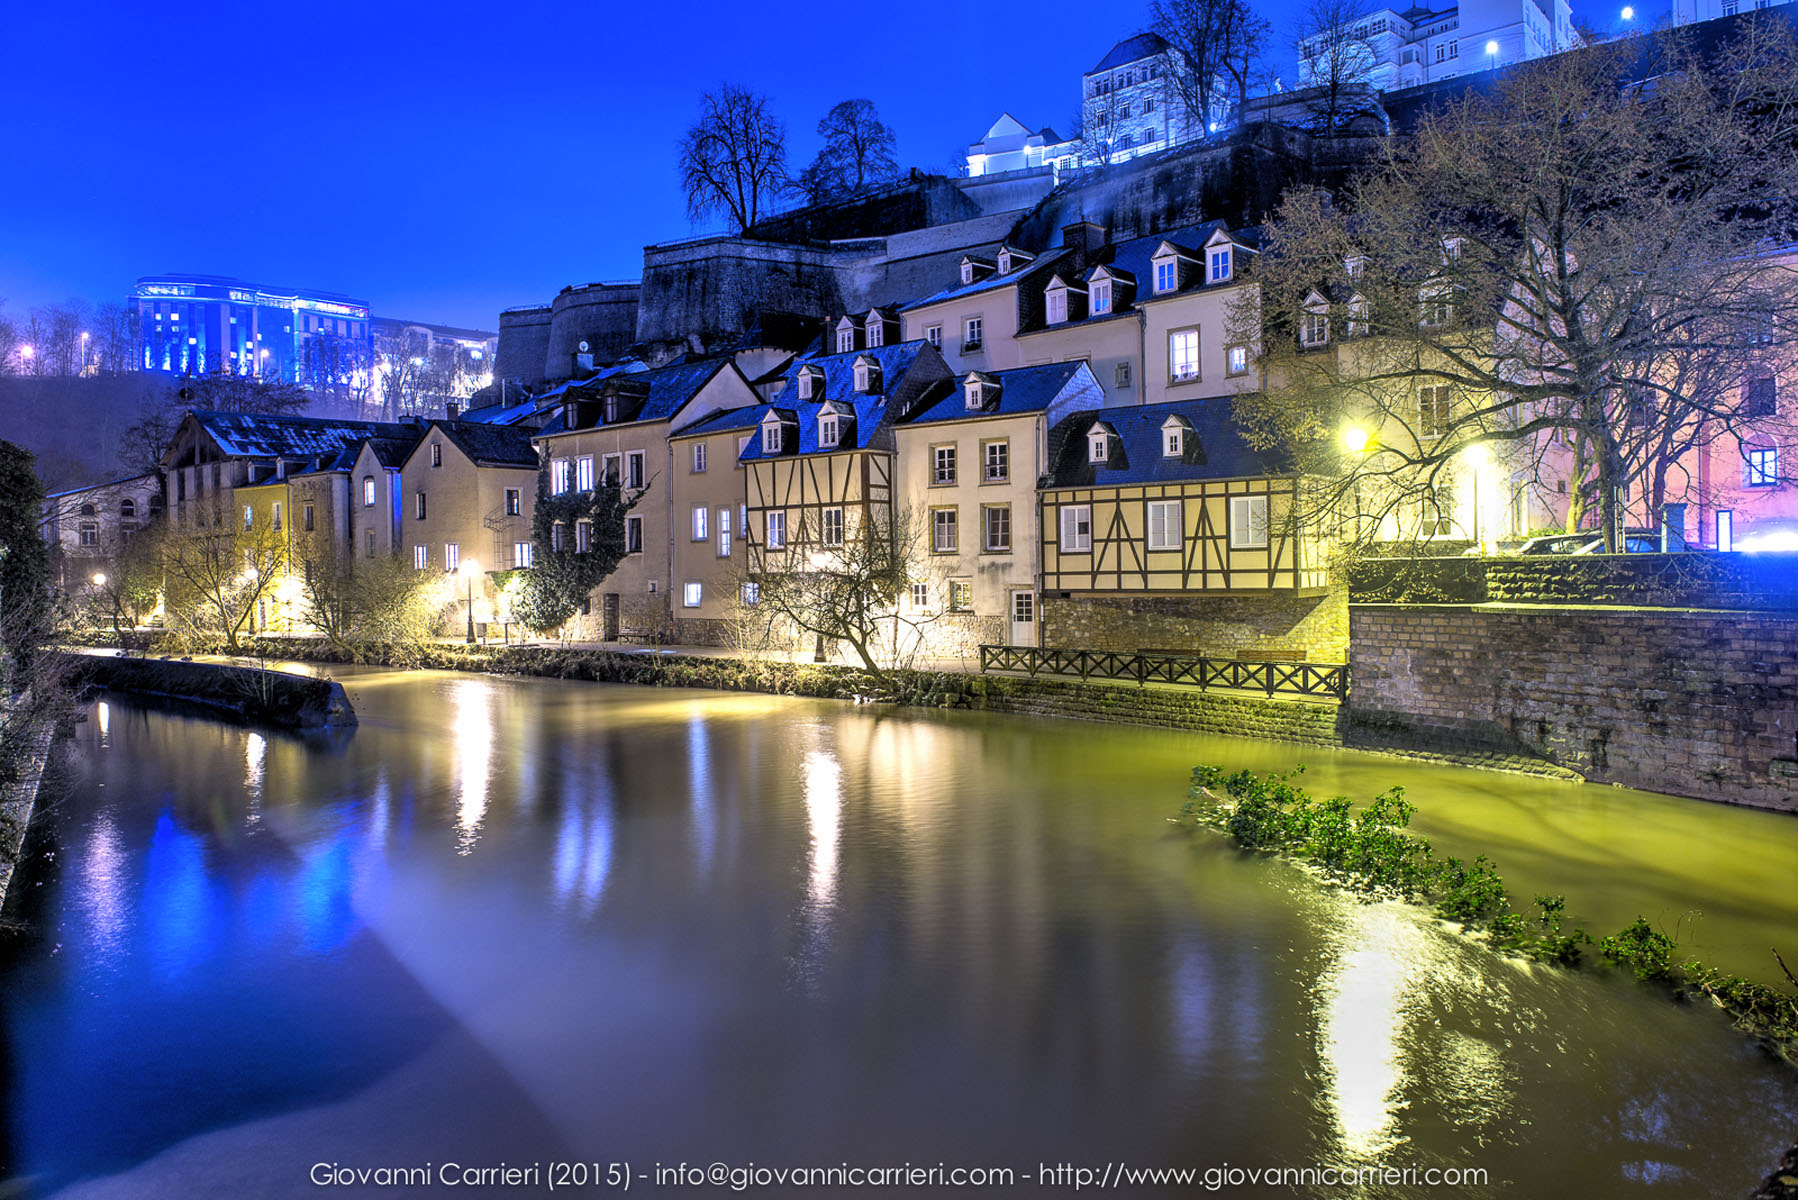 Landscape of the old city - Luxembourg